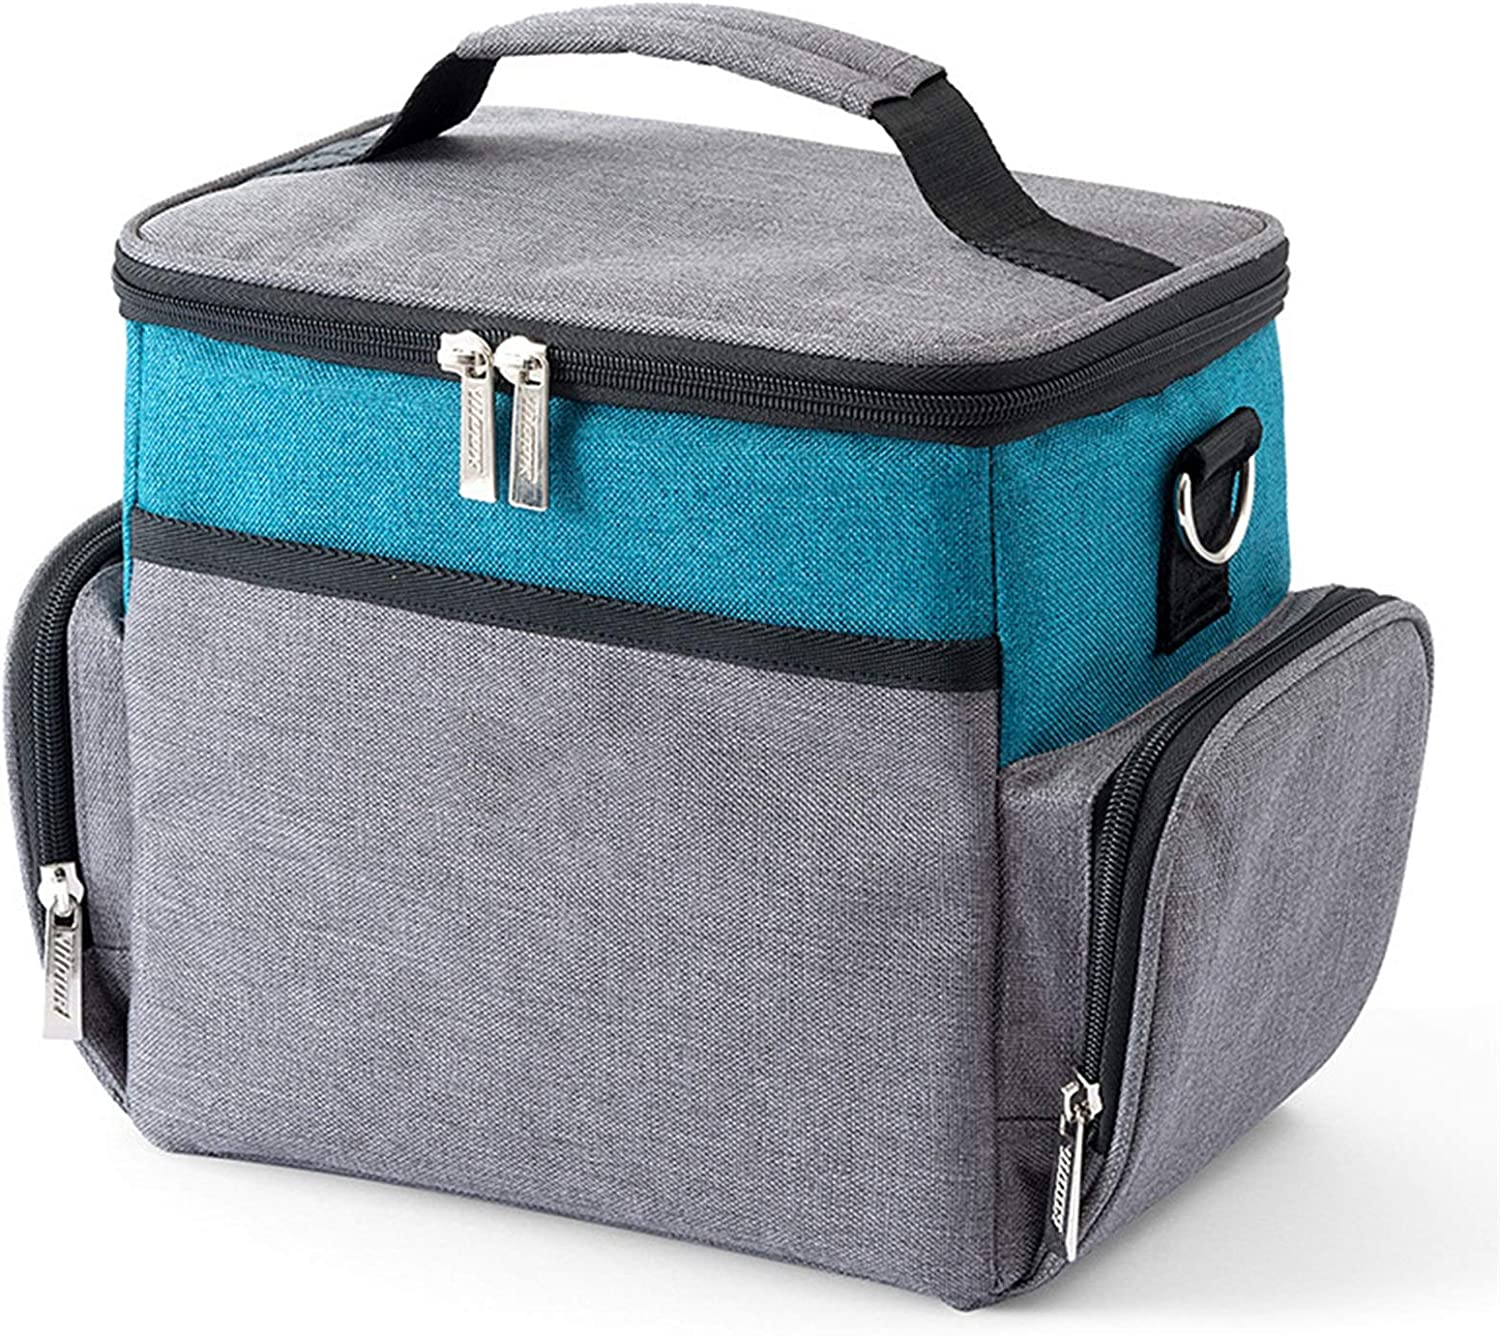 Waterproof Double Deck Lunch Bag,Insulated Cooler Bags/Large Picnic Tote/Reusable Thermal Food Delivery Backpack,for Office/School/Picnic (Color : C)